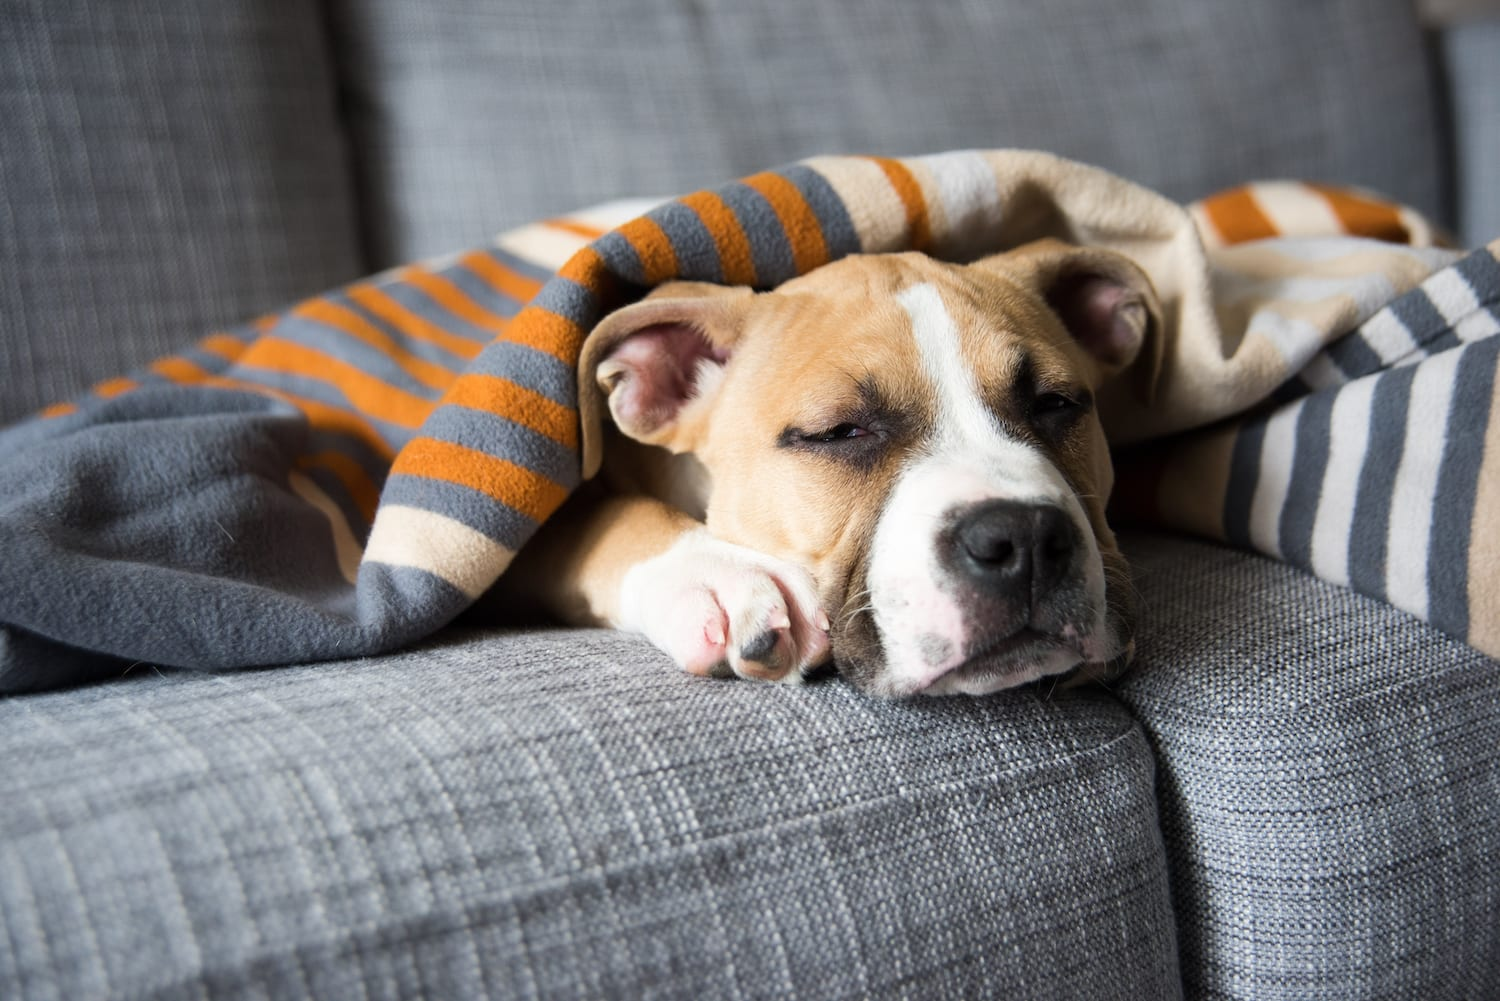 Dog sleeping on couch with blanket